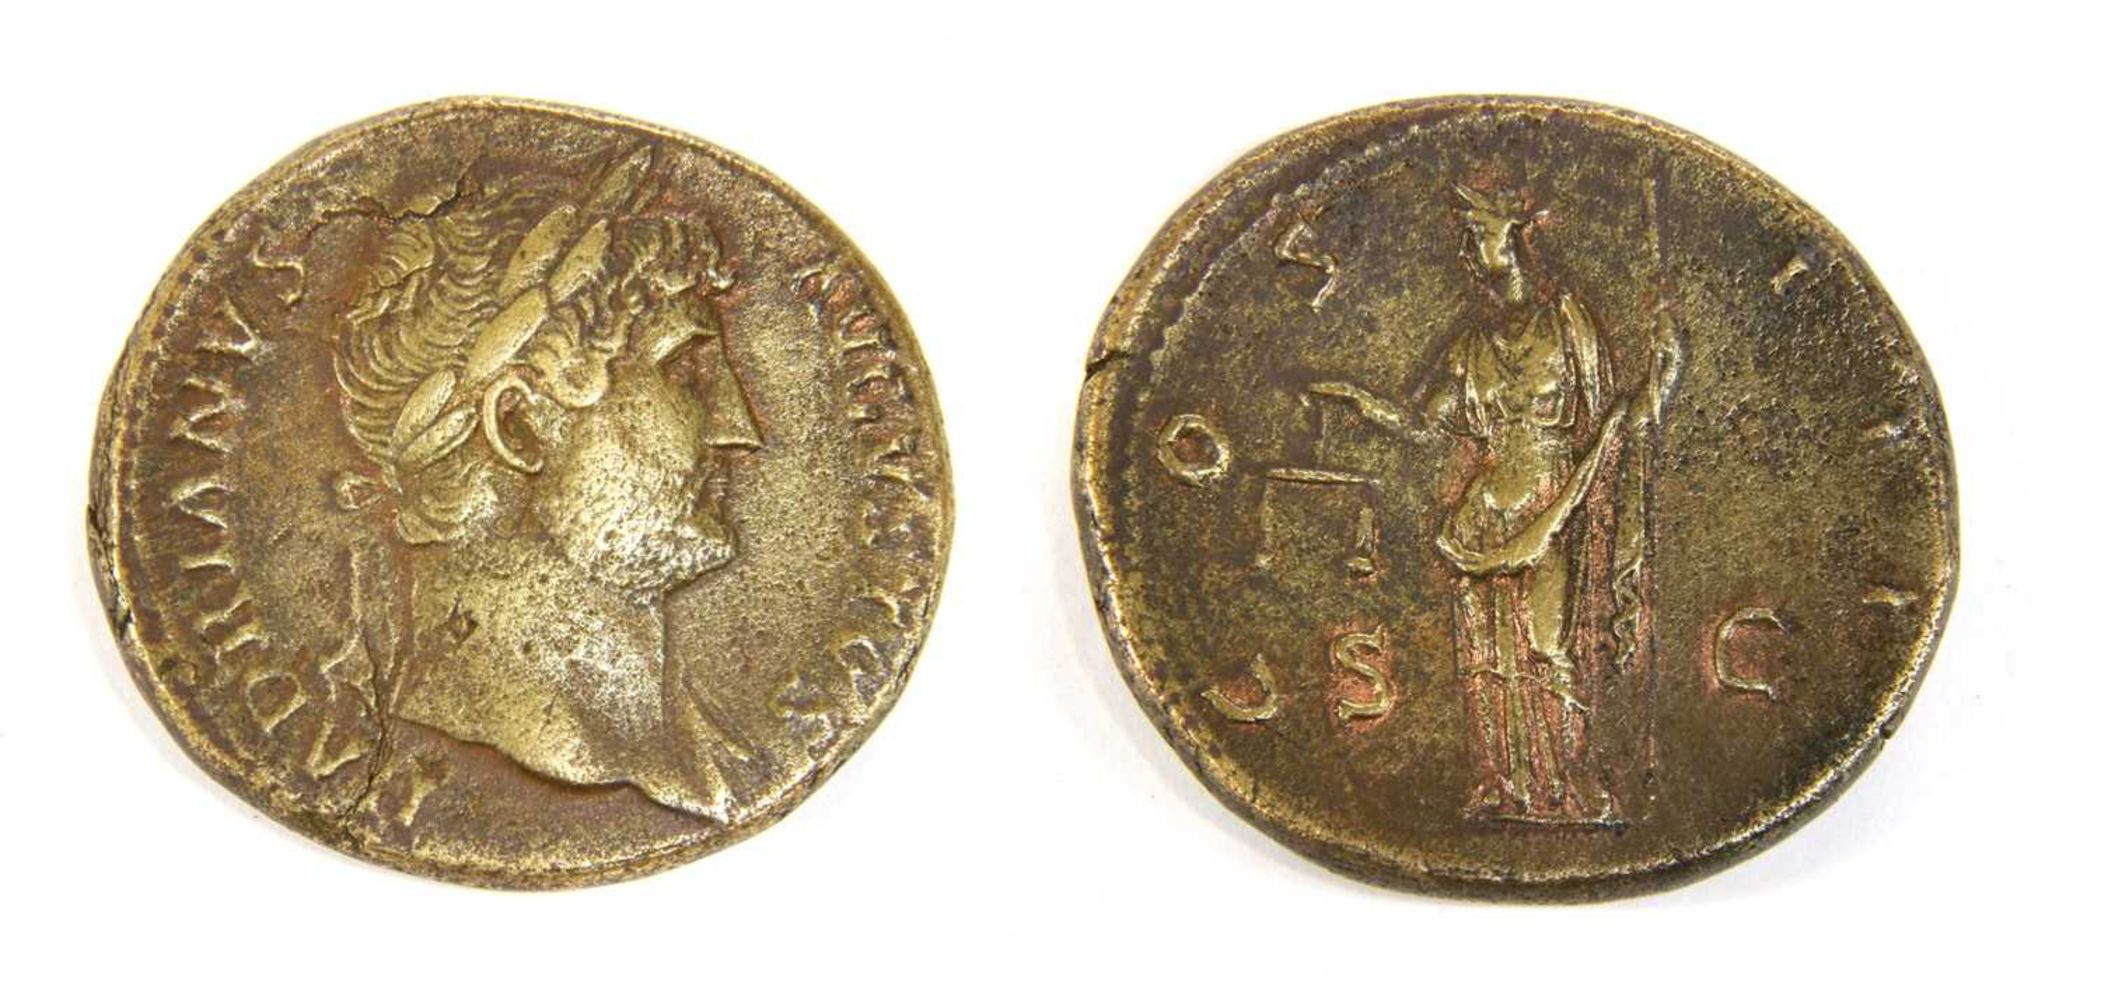 Coins, Banknotes and Medallions - Timed Auction